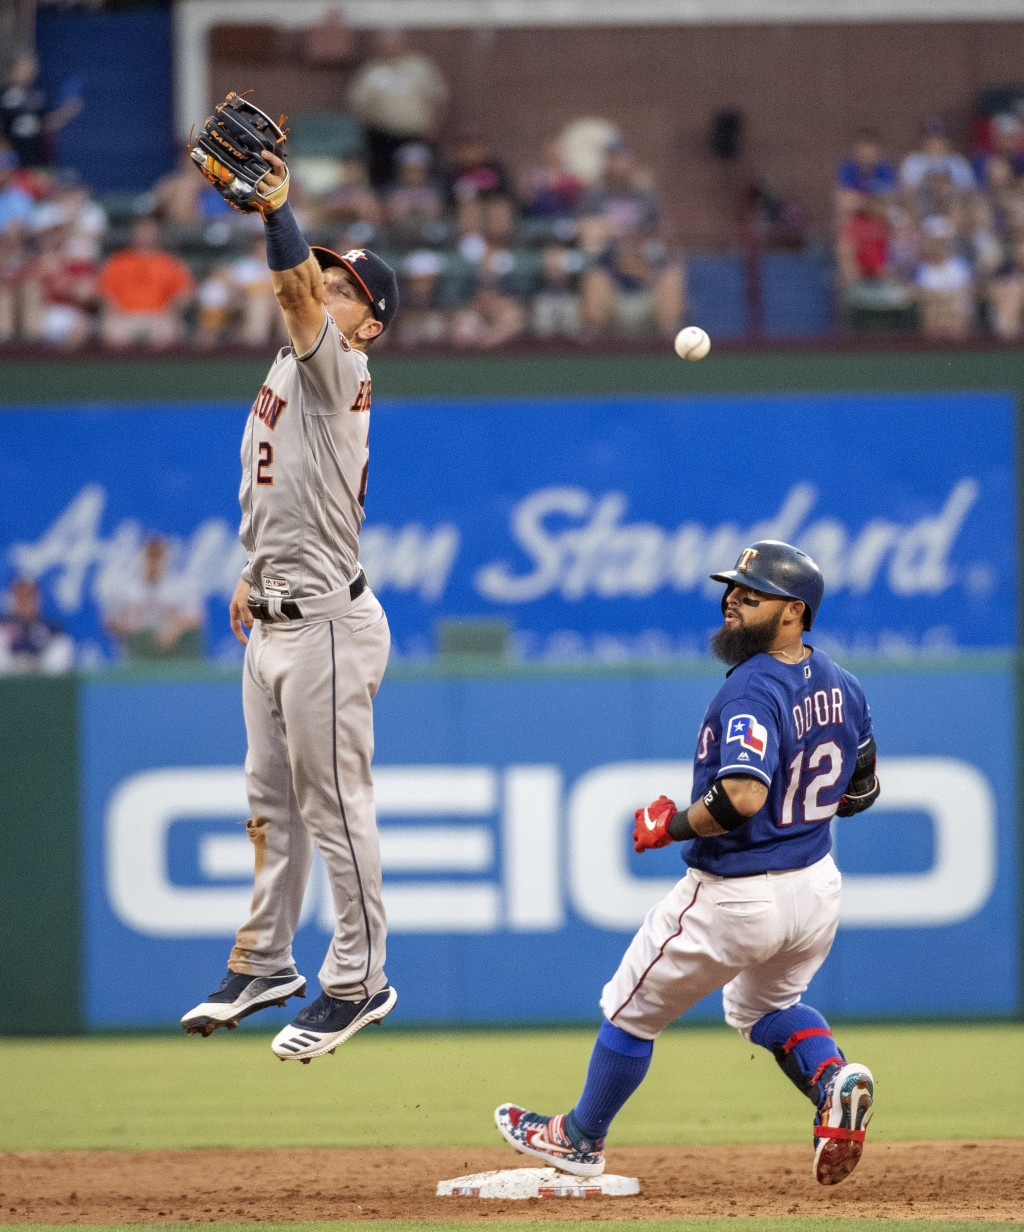 Houston Astros shortstop Alex Bregman (2) misses the relay throw as Texas Rangers' Rougned Odor (12) cruises into second with a double during the thir